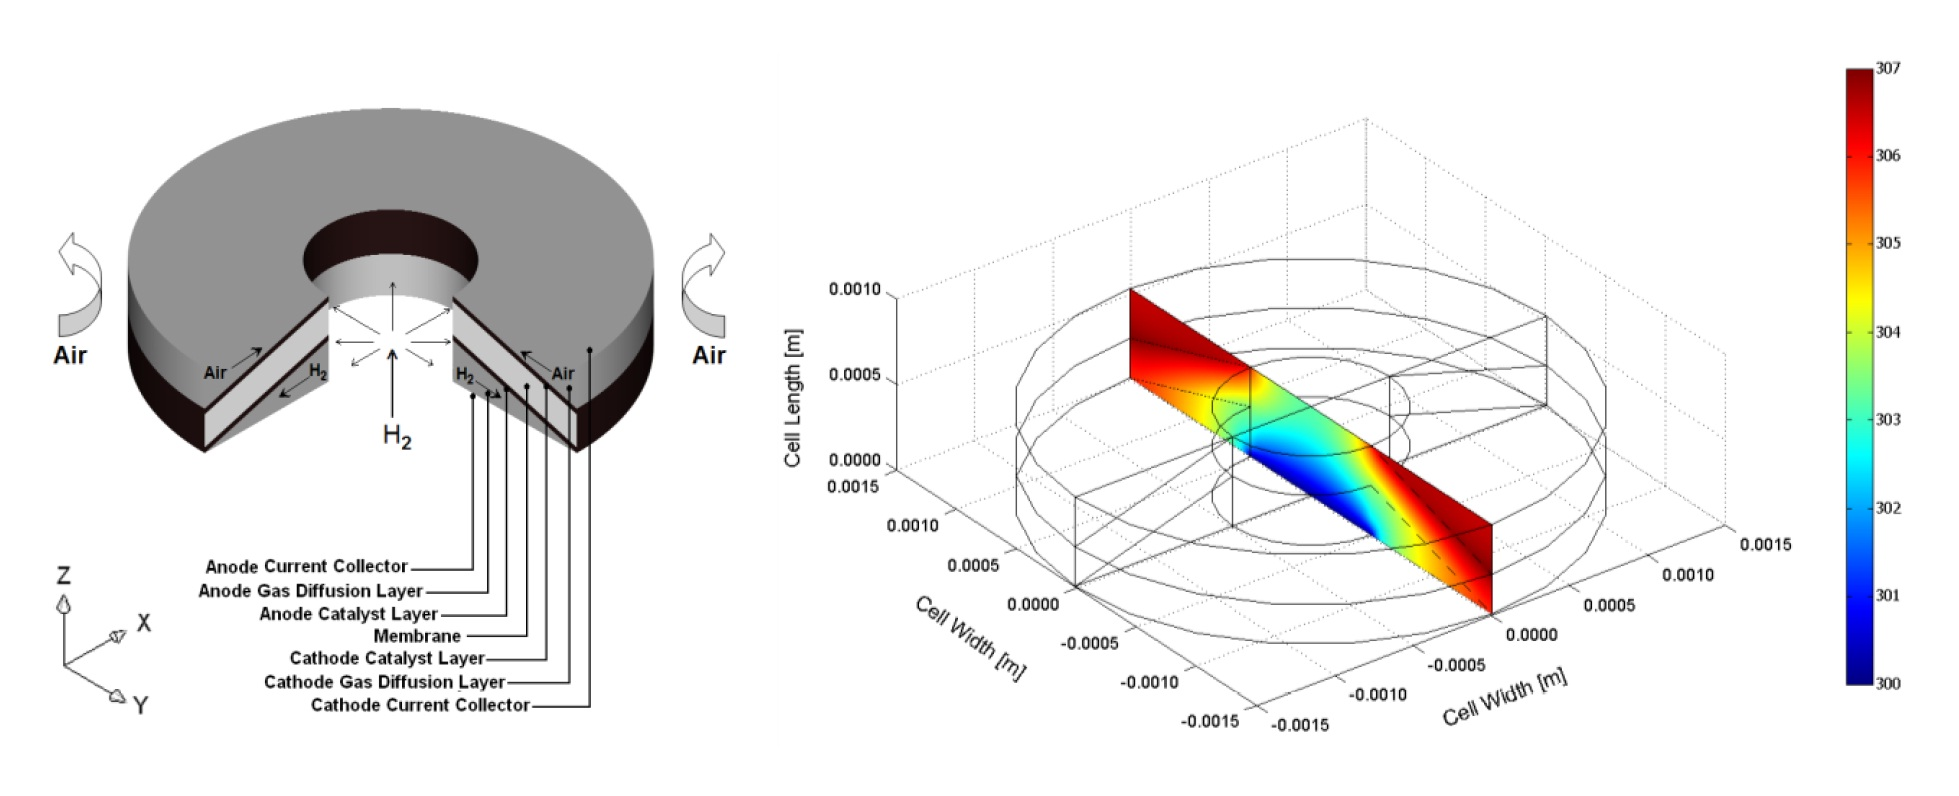 Figure 10. Three-dimensional computational domain of a disk-shaped micro-structured ambient air-breathing PEM micro fuel cell and the temperature distribution inside the cell [26].